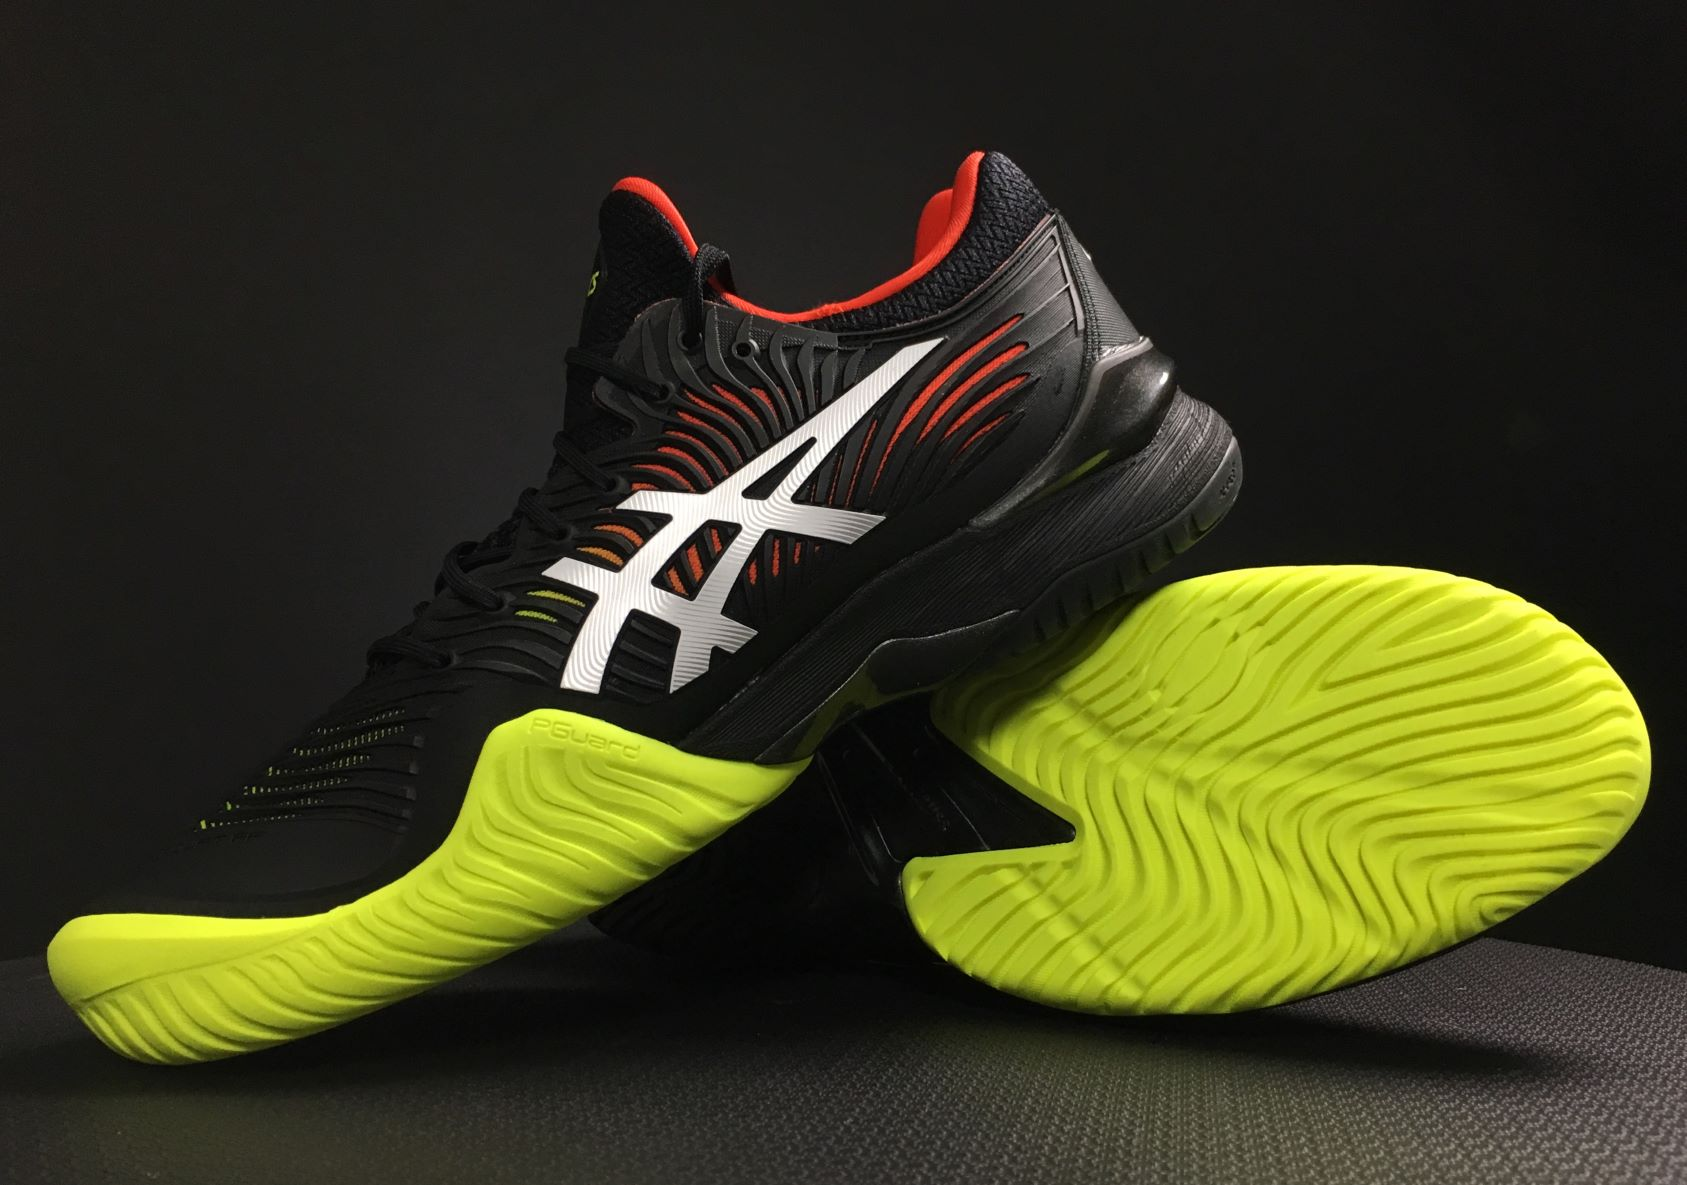 ASICS COURT FF 2 Review: What ya Gonna Do When They Come For You?